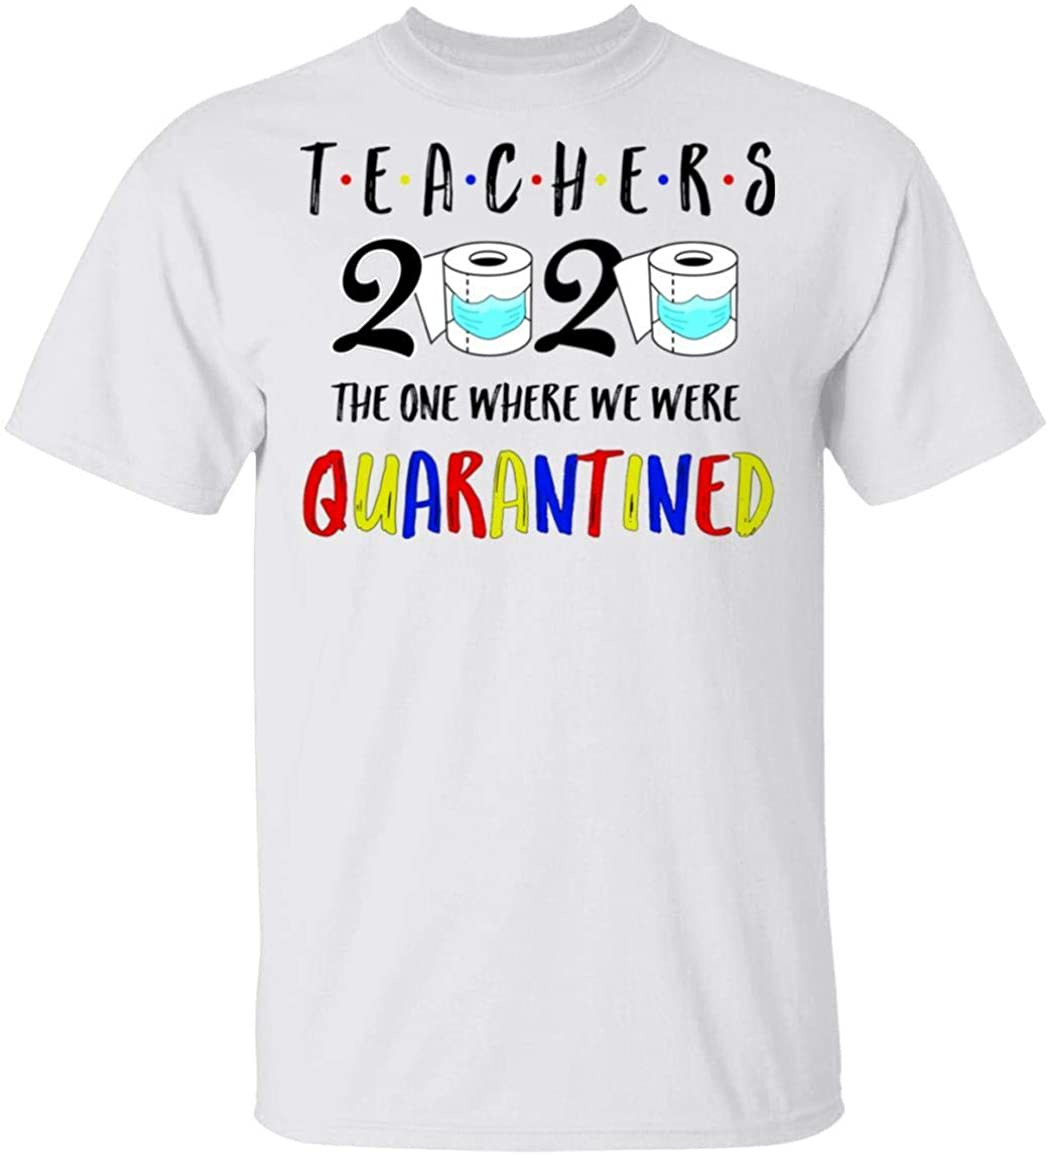 TeesReal Teacher The One Where They were Quarantined 2020 Shirt Short Sleeve Tee